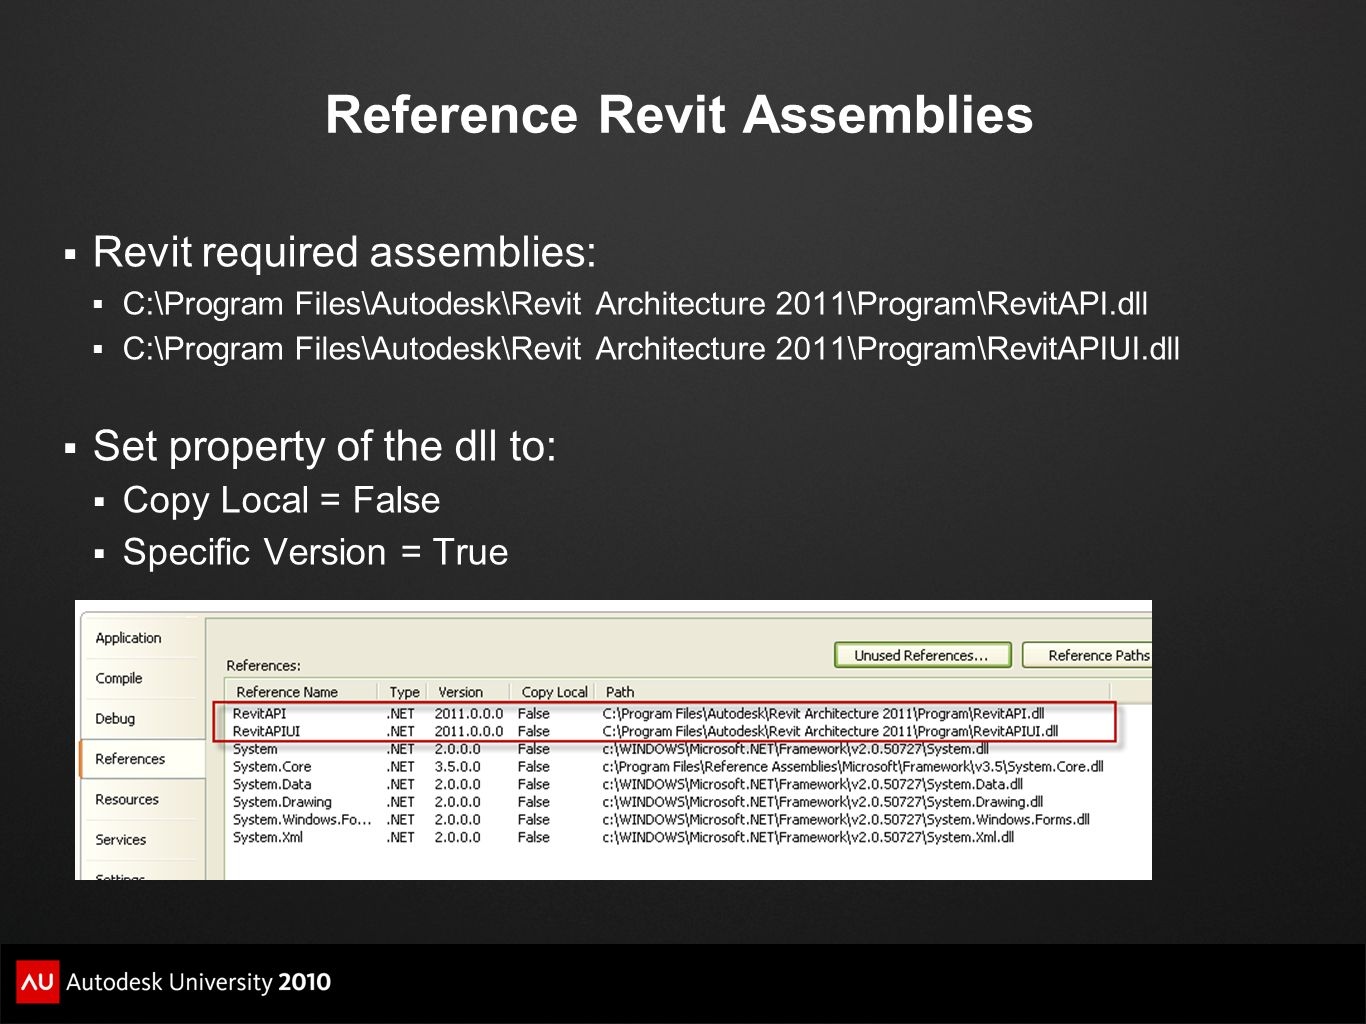 Reference Revit Assemblies